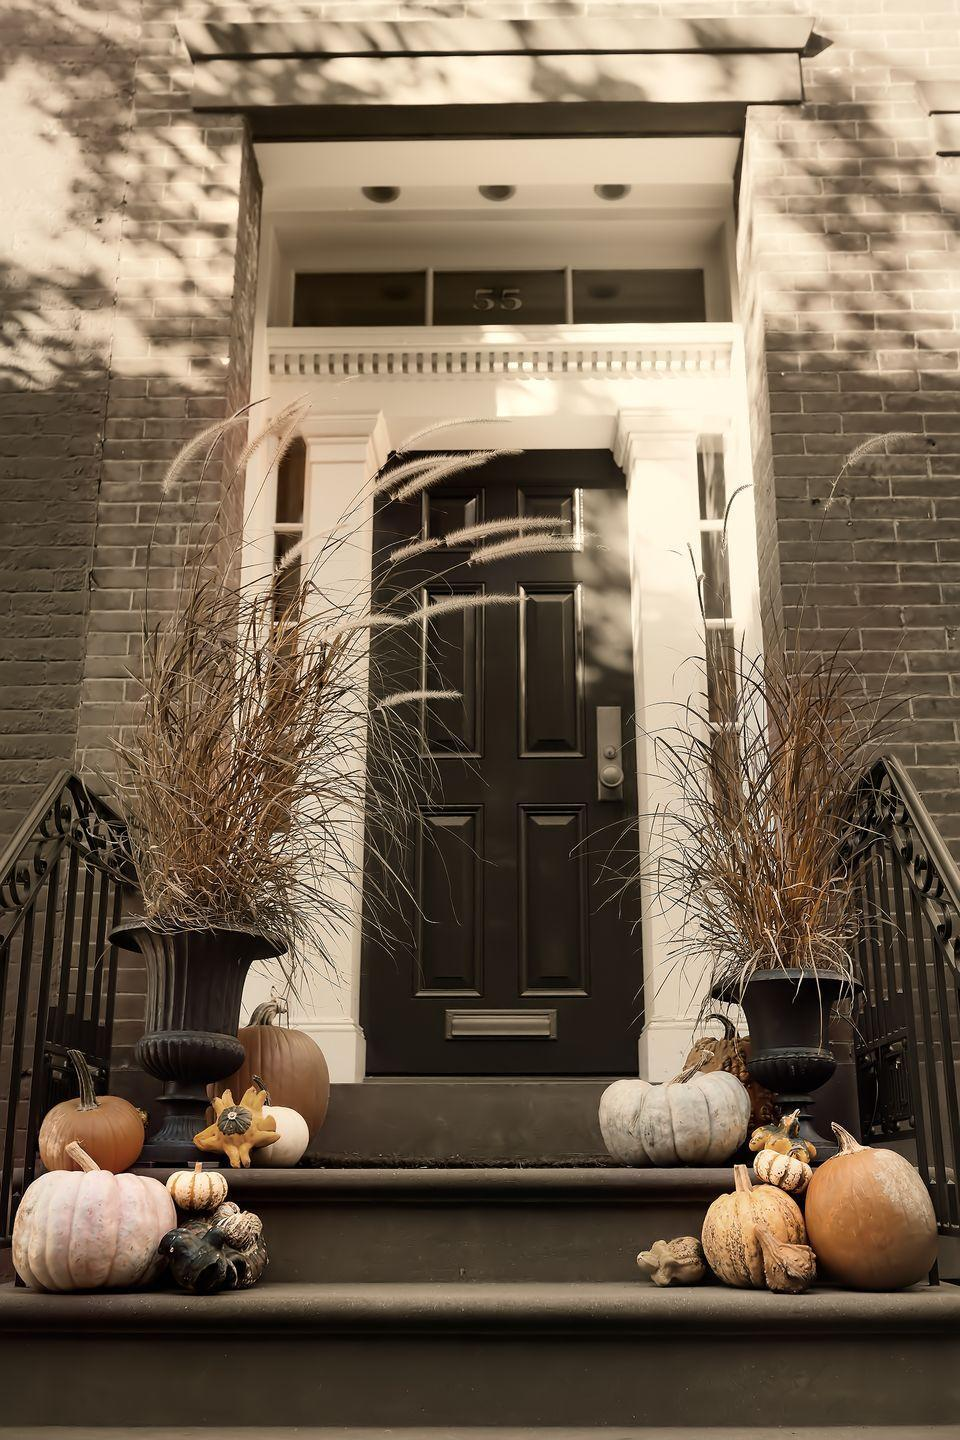 """<p>Don't fret if you prefer to avoid over-the-top Halloween decorations that detract from your exterior's aesthetic. Complement your home's black and white entrance by grouping pumpkins in different sizes right on your front steps. </p><p><a class=""""link rapid-noclick-resp"""" href=""""https://go.redirectingat.com?id=74968X1596630&url=https%3A%2F%2Fwww.etsy.com%2Flisting%2F627434602%2F25-fall-winter-wedding-decor-mini-real&sref=https%3A%2F%2Fwww.goodhousekeeping.com%2Fholidays%2Fhalloween-ideas%2Fg32948621%2Fhalloween-door-decorations%2F"""" rel=""""nofollow noopener"""" target=""""_blank"""" data-ylk=""""slk:SHOP WHITE PUMPKINS"""">SHOP WHITE PUMPKINS</a></p>"""